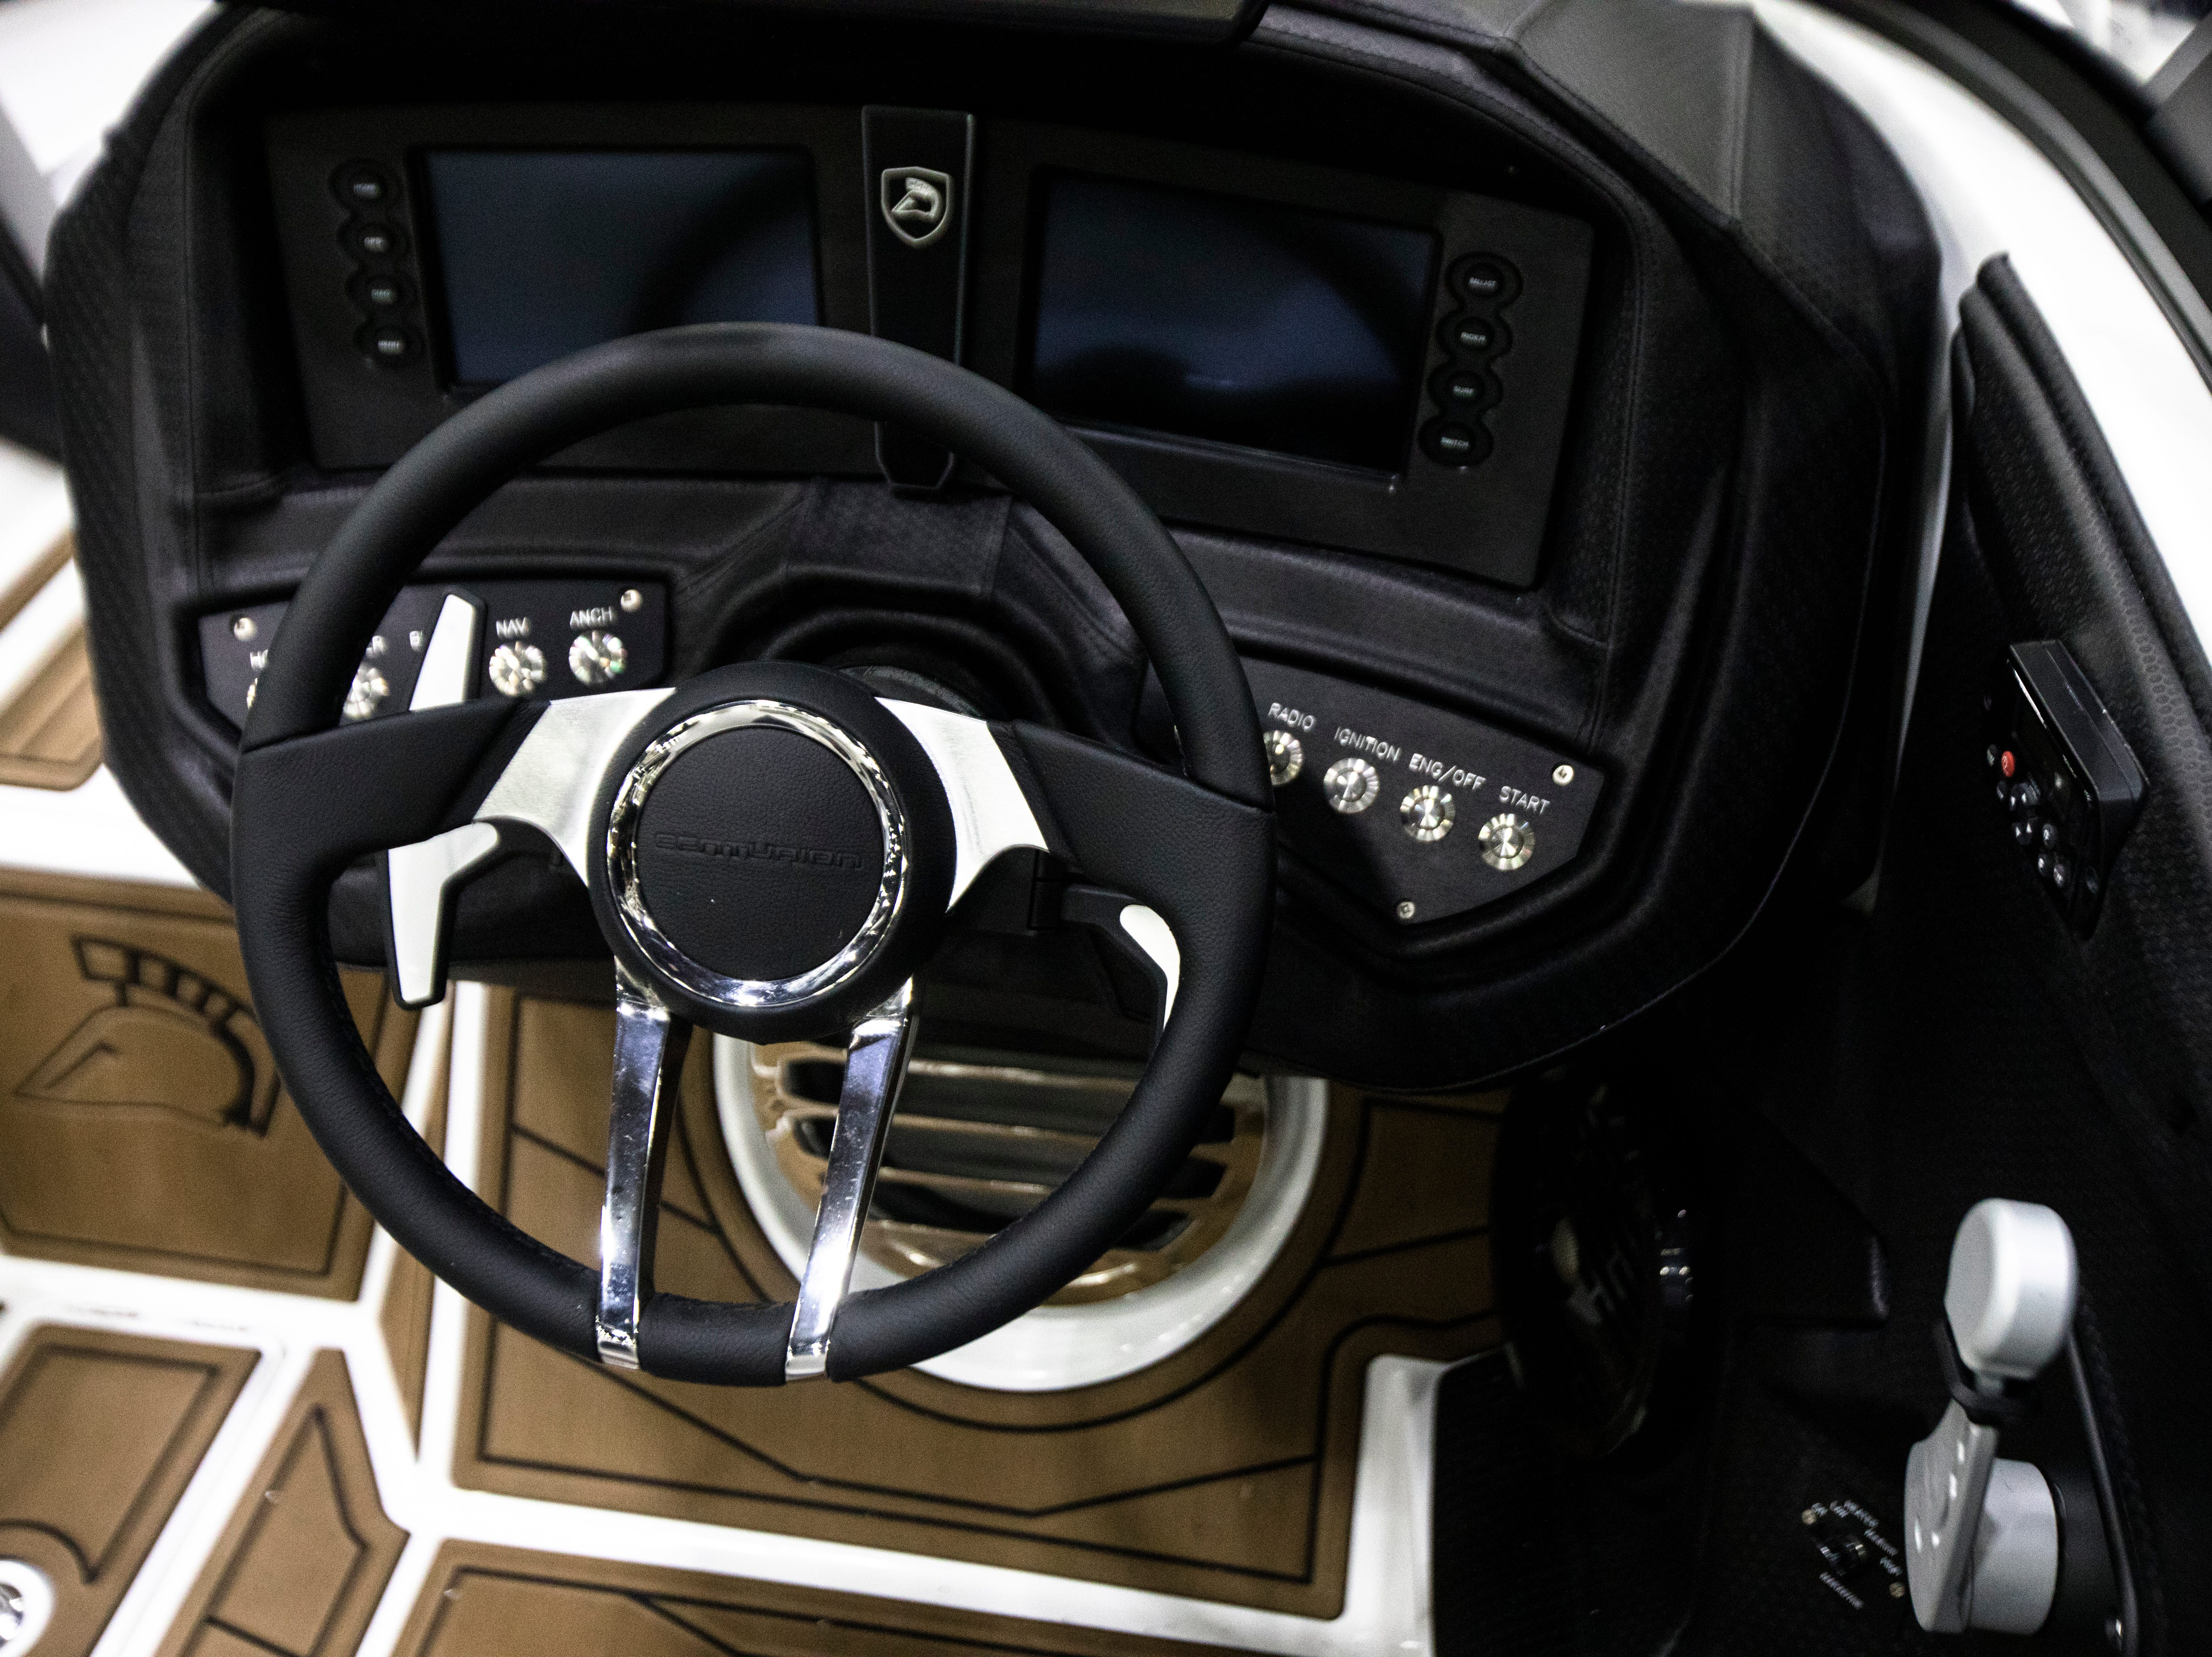 A view of the Centurion Ri257 steering wheel at the annual Cincinnati Travel Sports and Boat Show on Wednesday, Jan. 16, 2018 at the Duke Energy Convention Center in Downtown Cincinnati. According to the manufacturer the MSRB on the Centurion Ri257 is around $205,000.